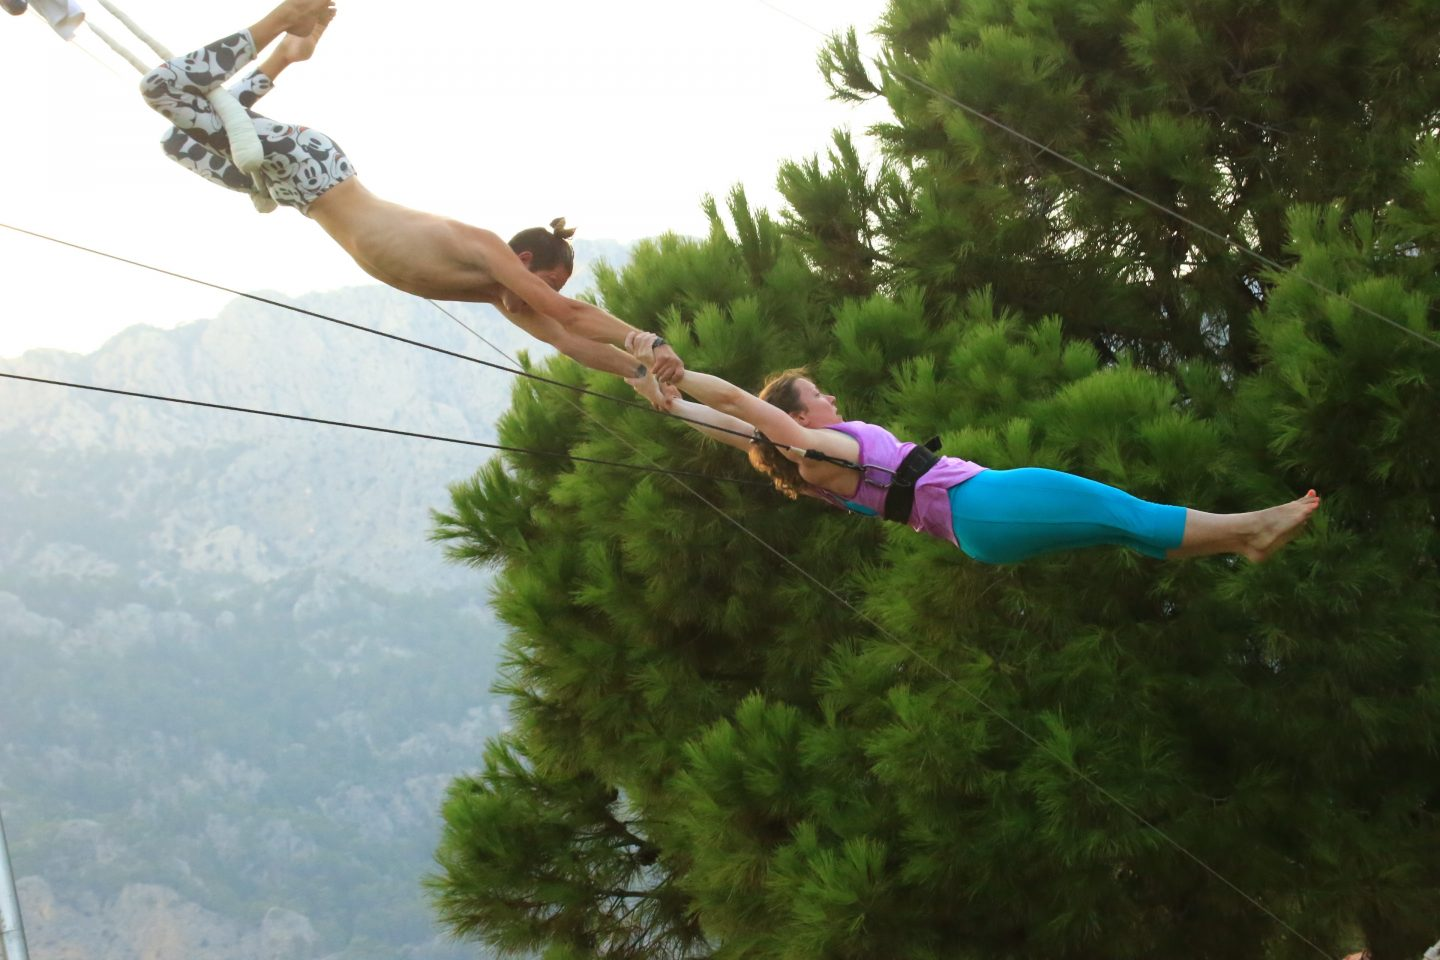 two trapeze artists hold each other in the air. trapeze, jump, faith, trust